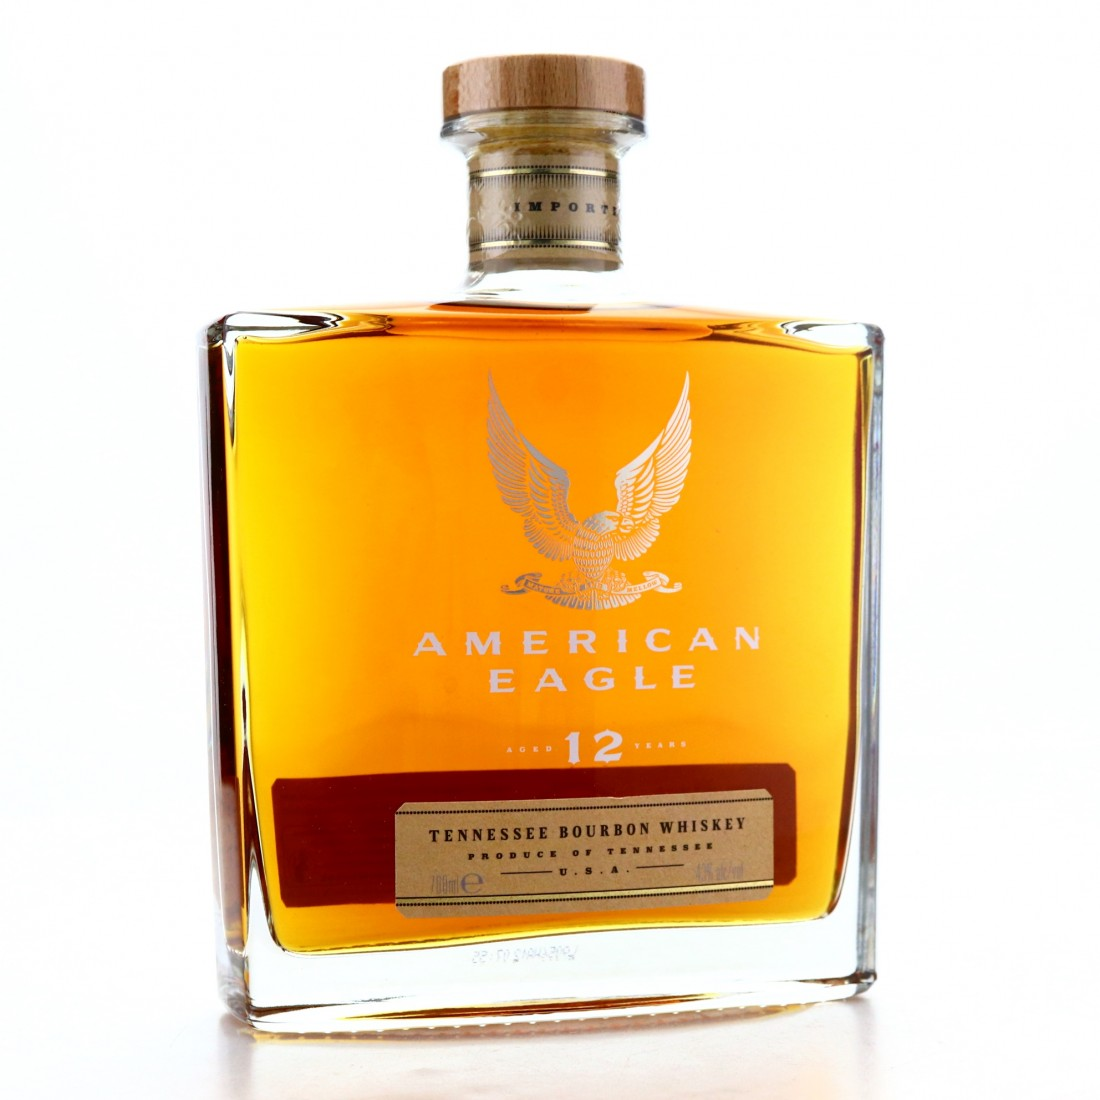 American Eagle 12 Year Old Tennessee Bourbon